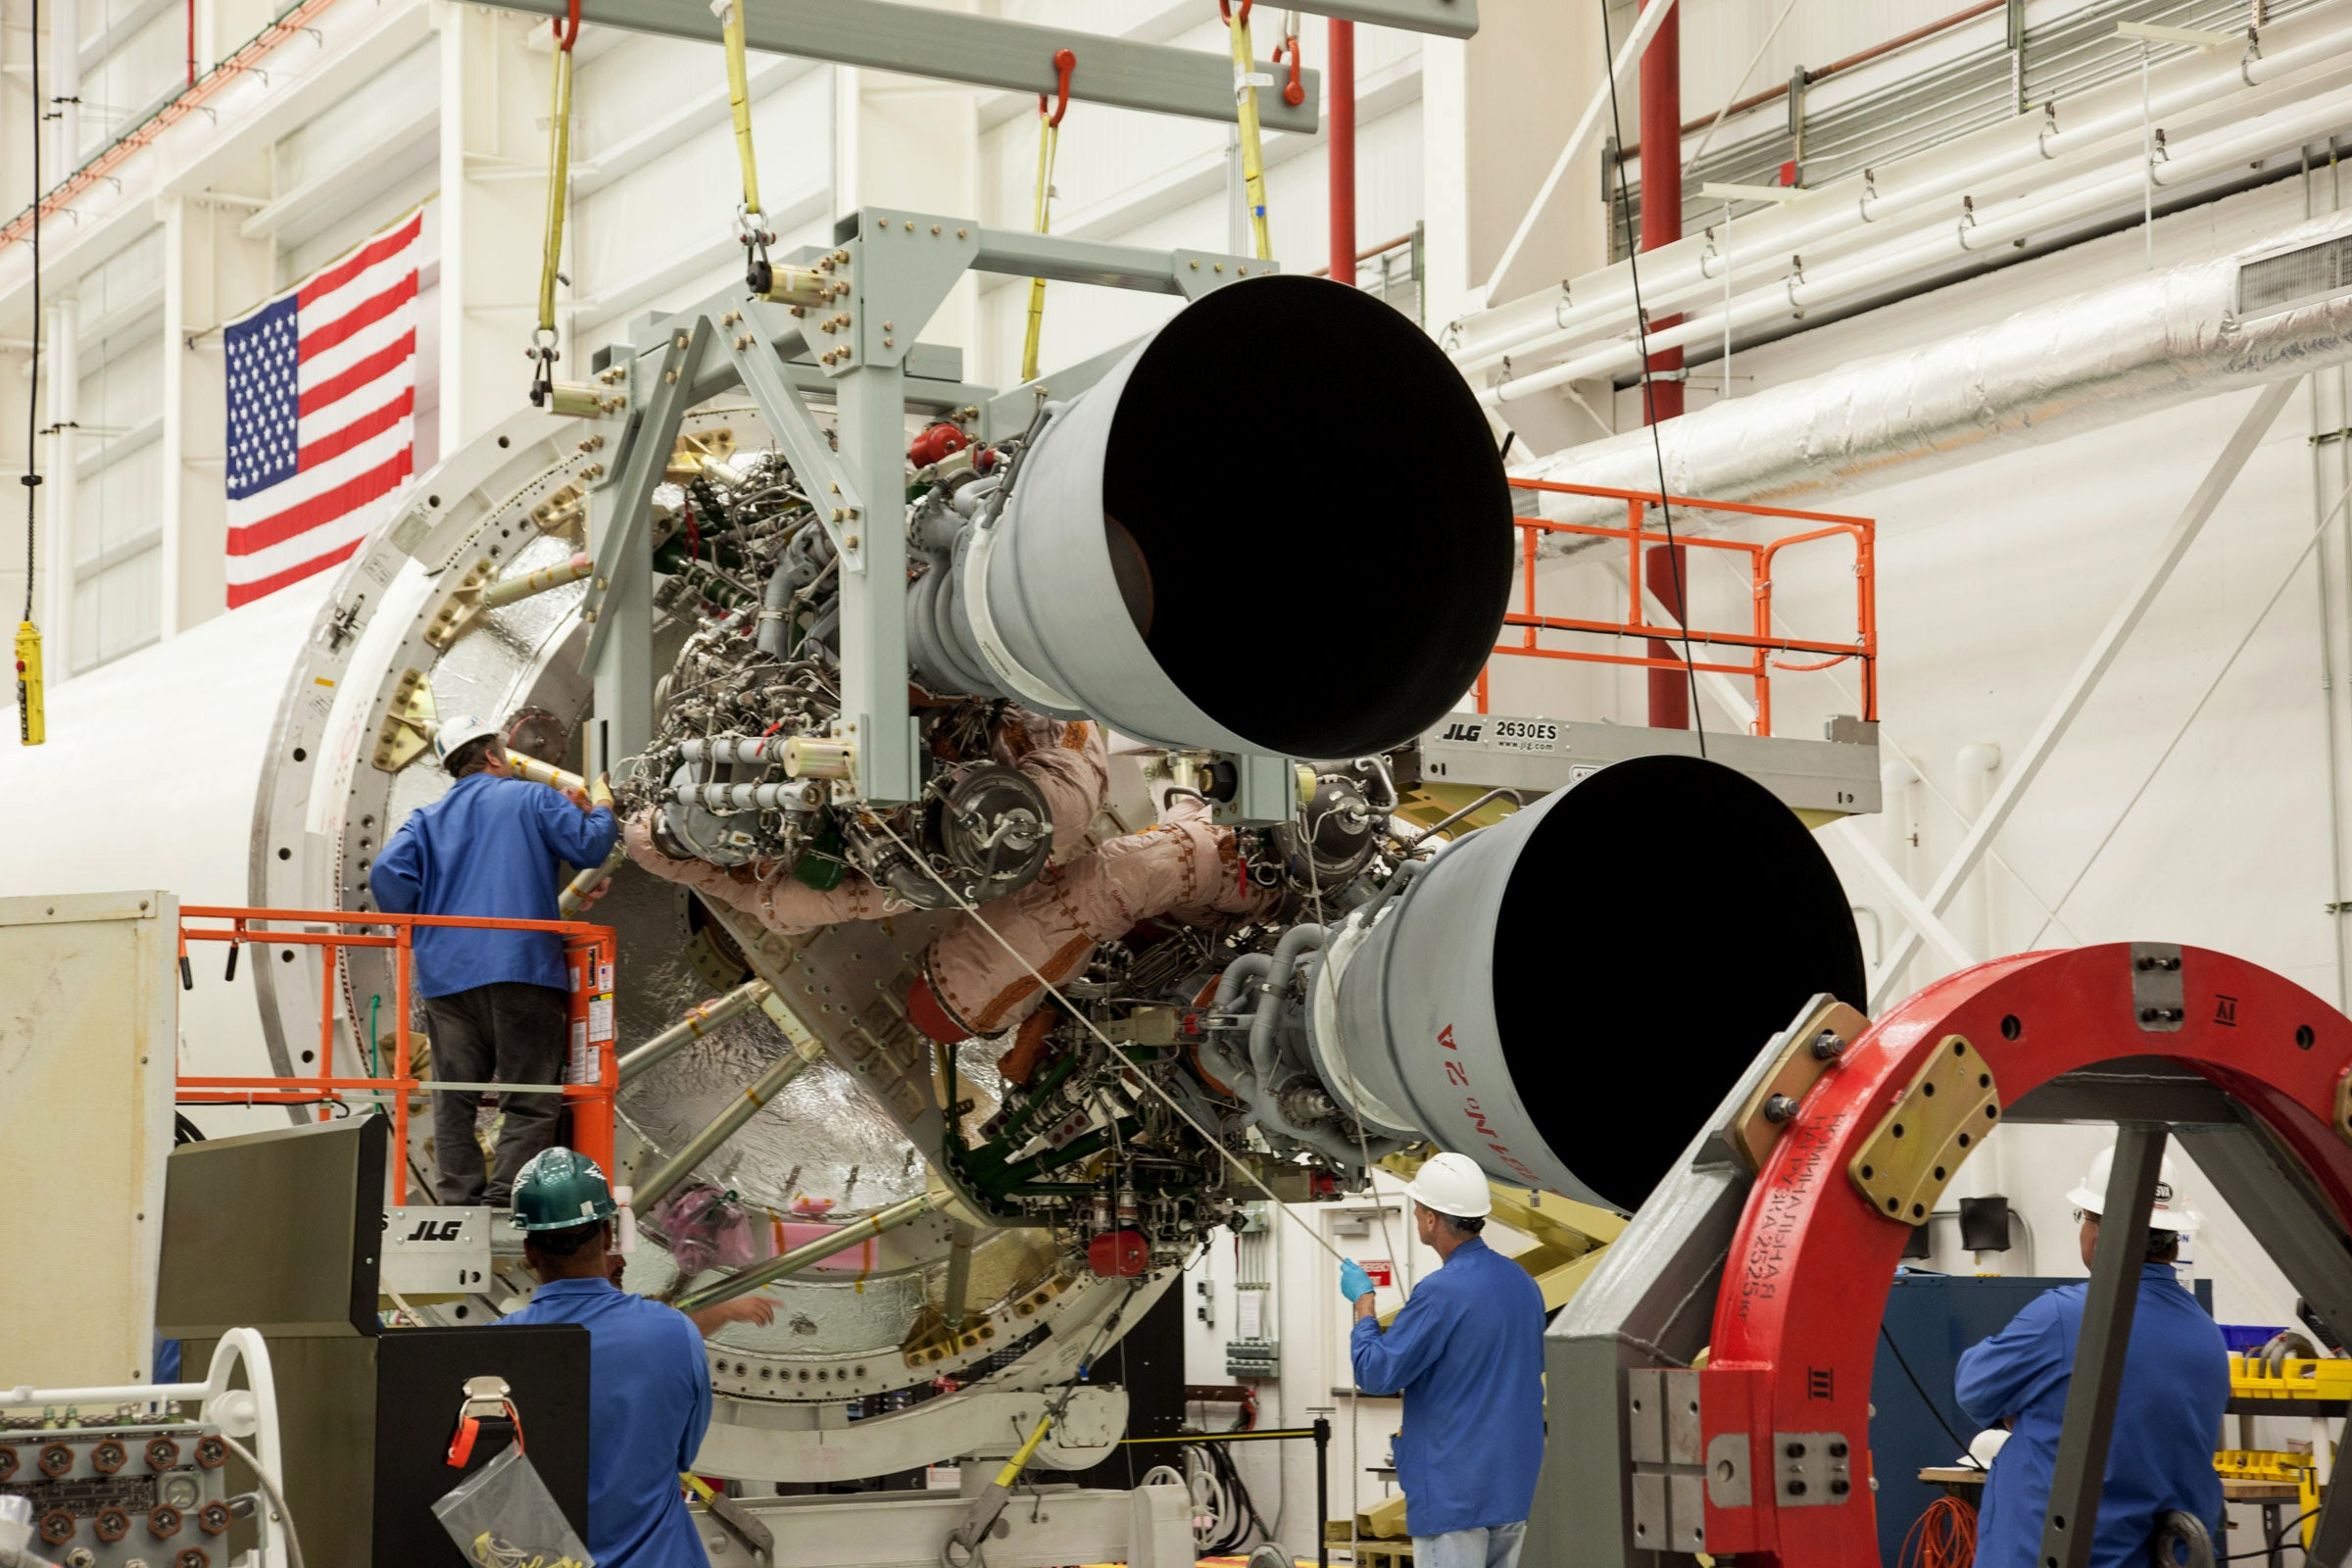 Orbital ATK's Rocket Set To Finally Fly Again After 2014 Explosion [Updated]